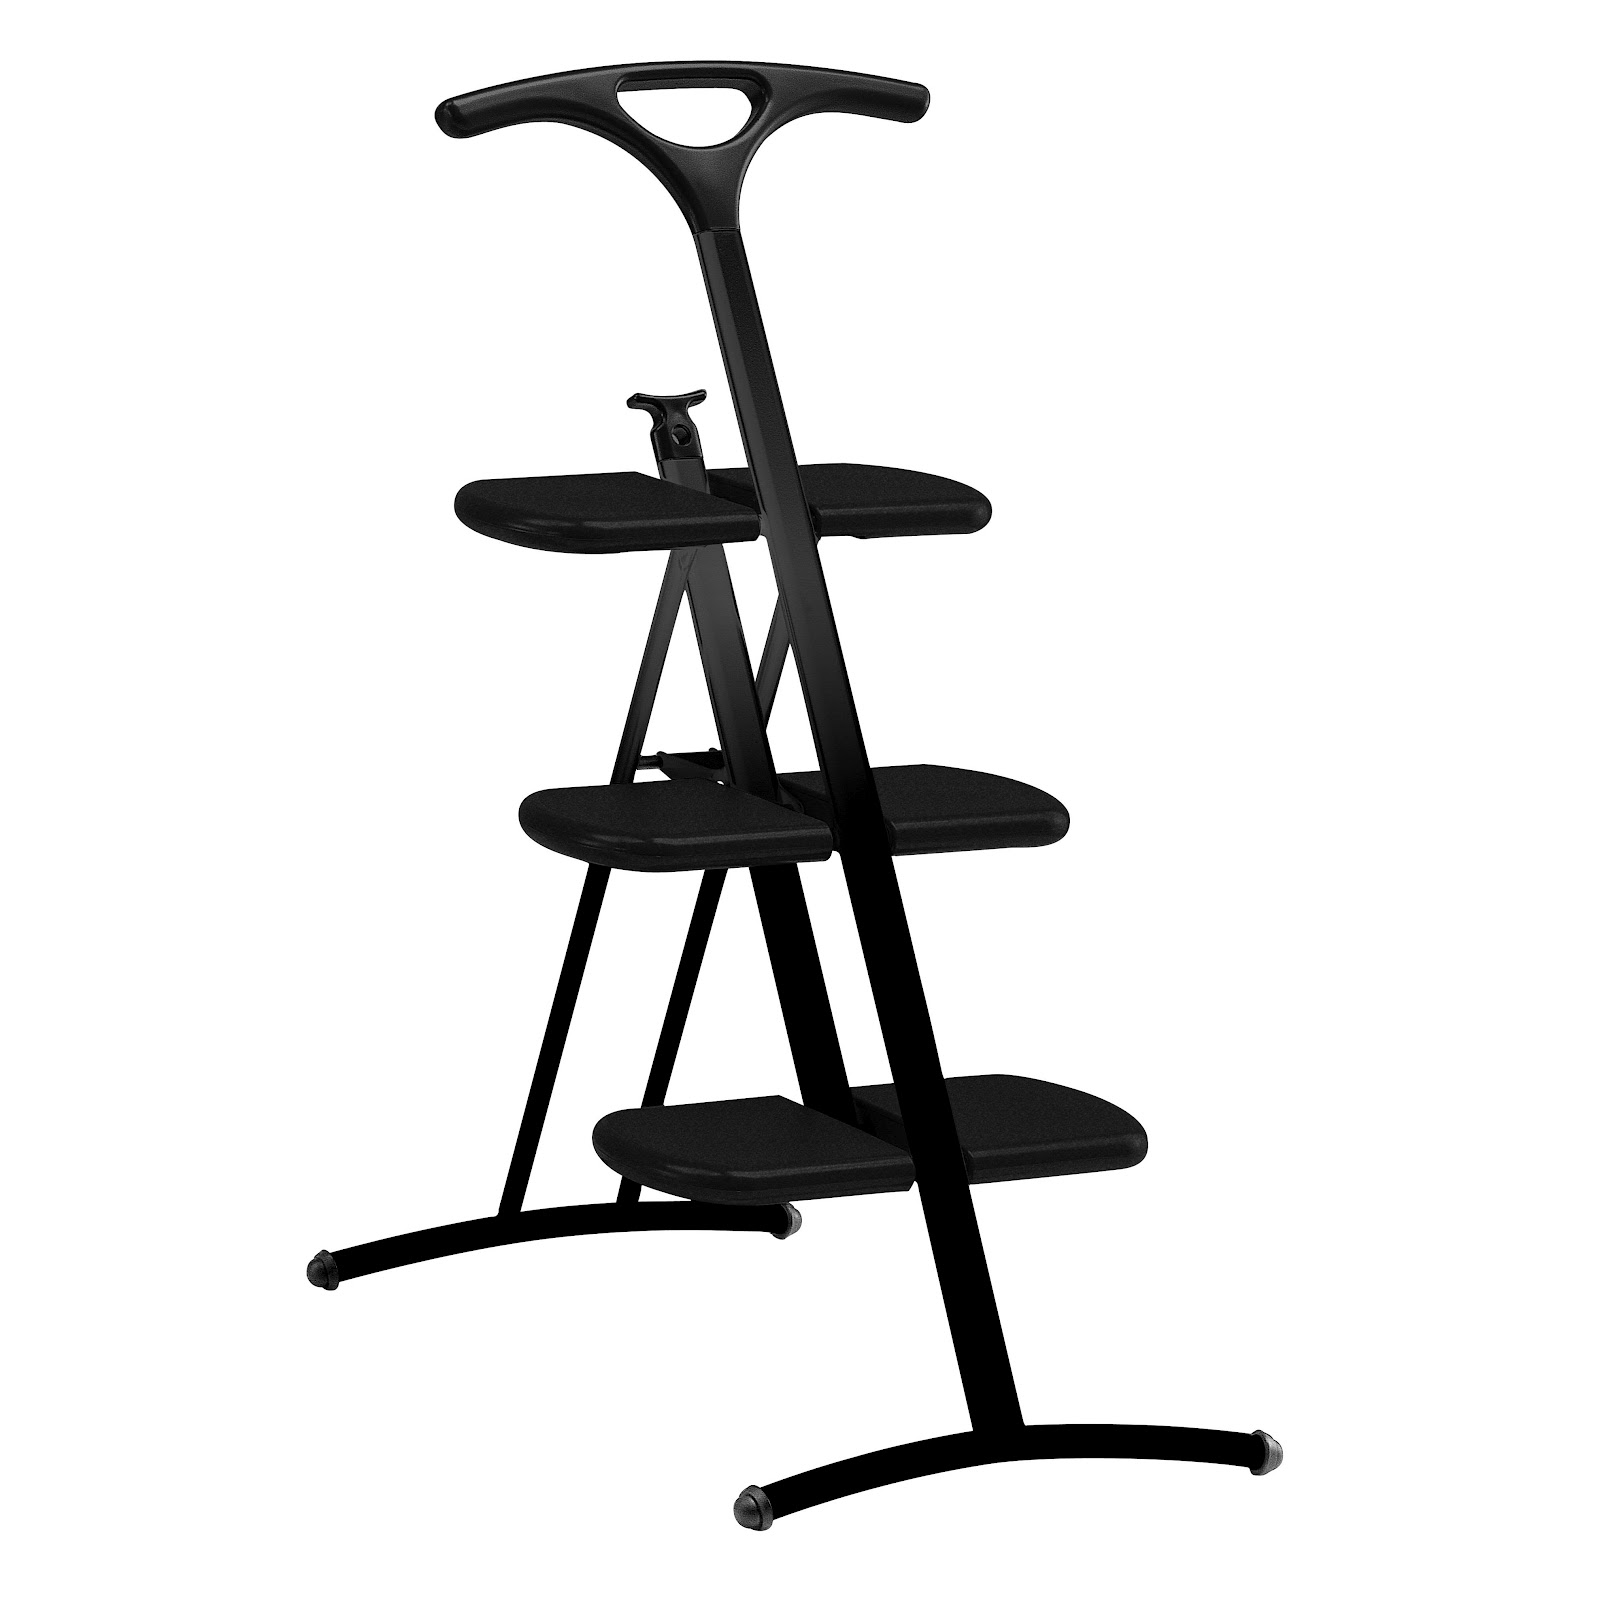 Ultraslim 3 Step Folding Step Ladder